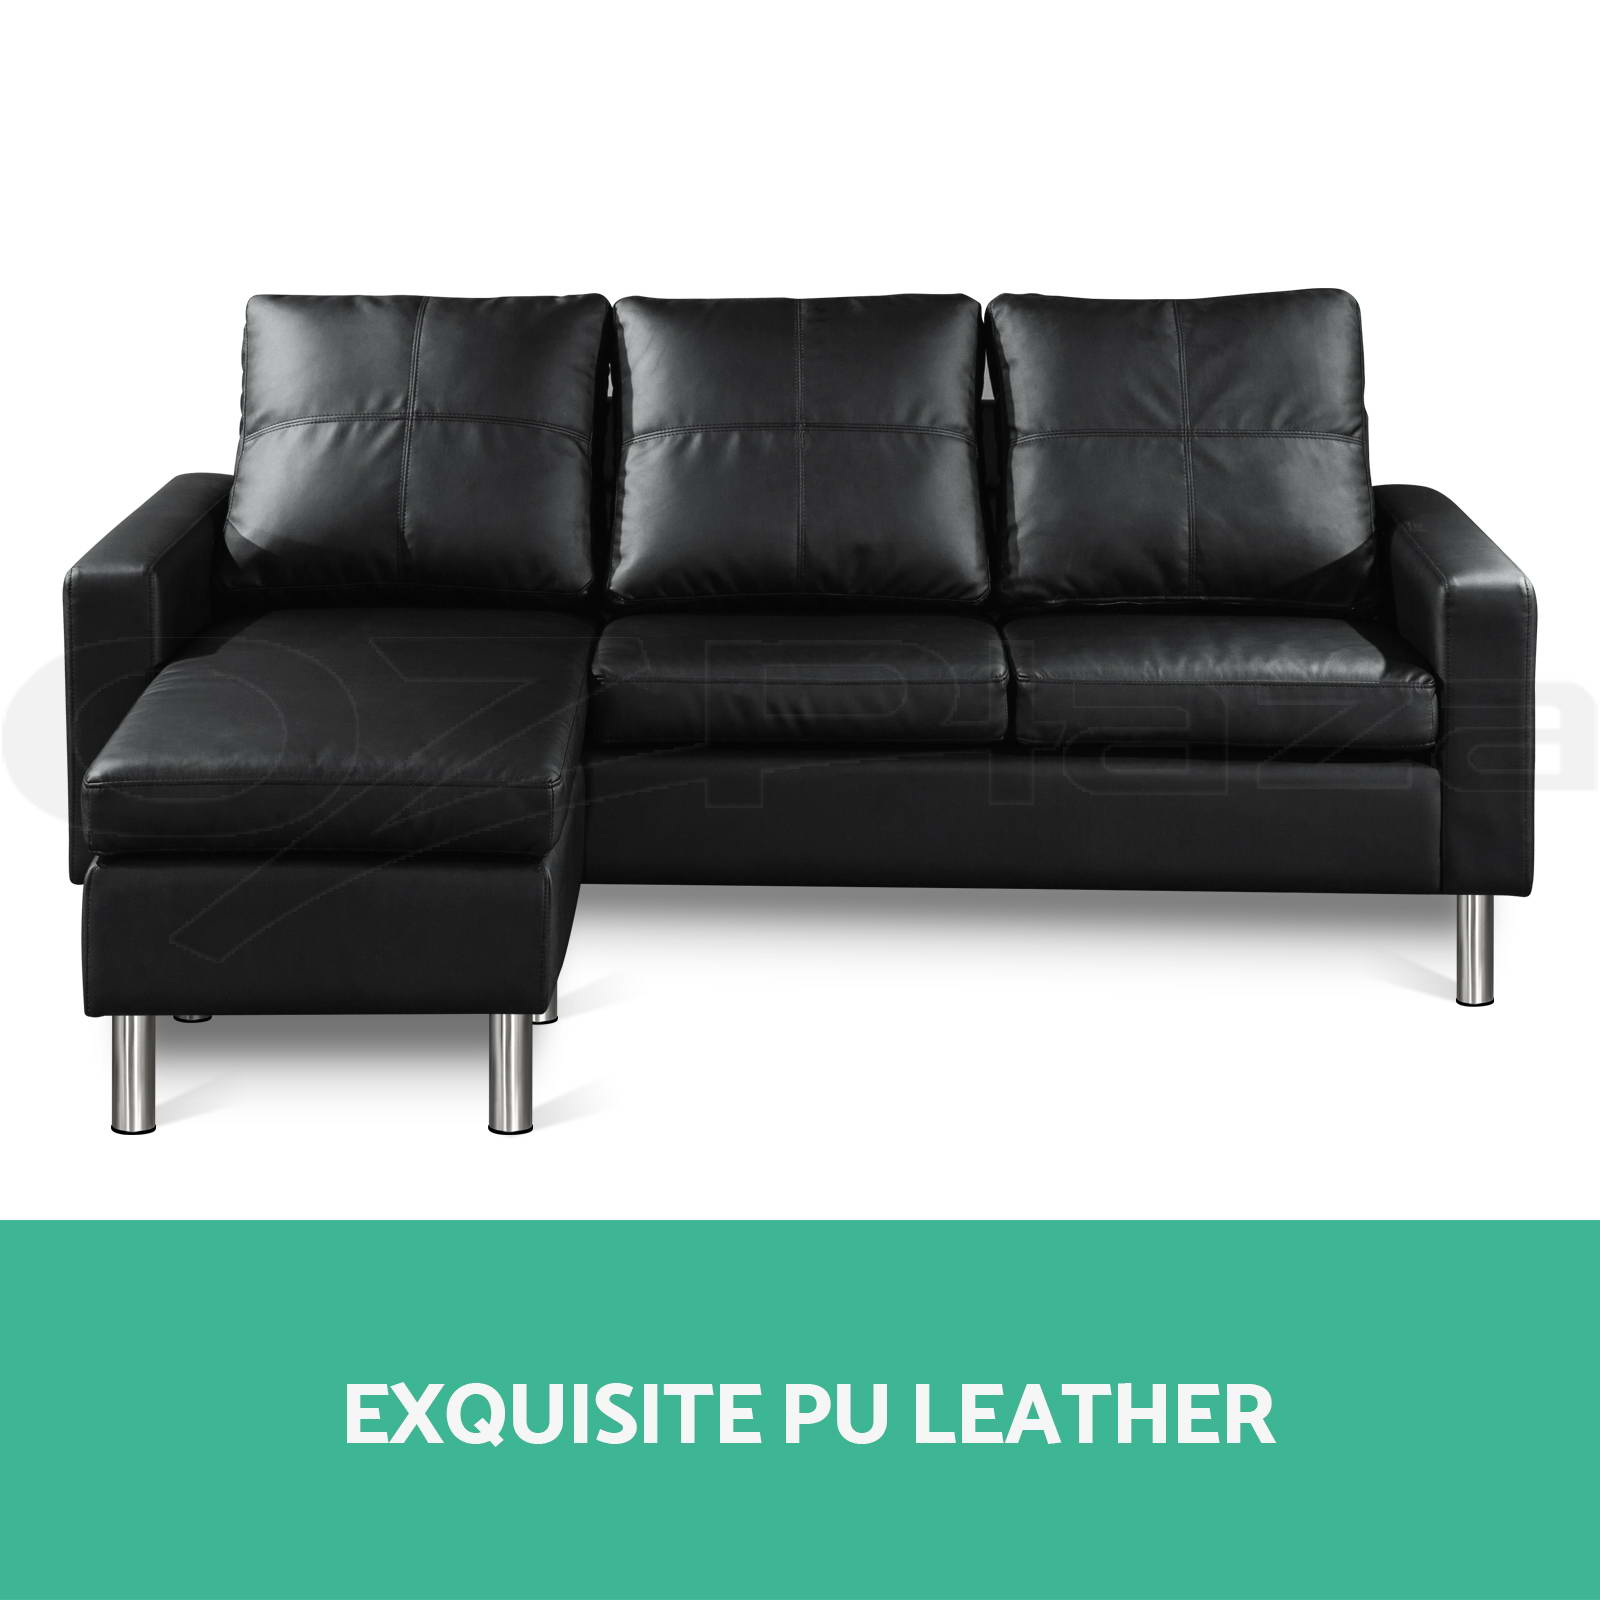 Pu leather sofa modular lounge suite chaise double couch 4 for Chaise leather lounge